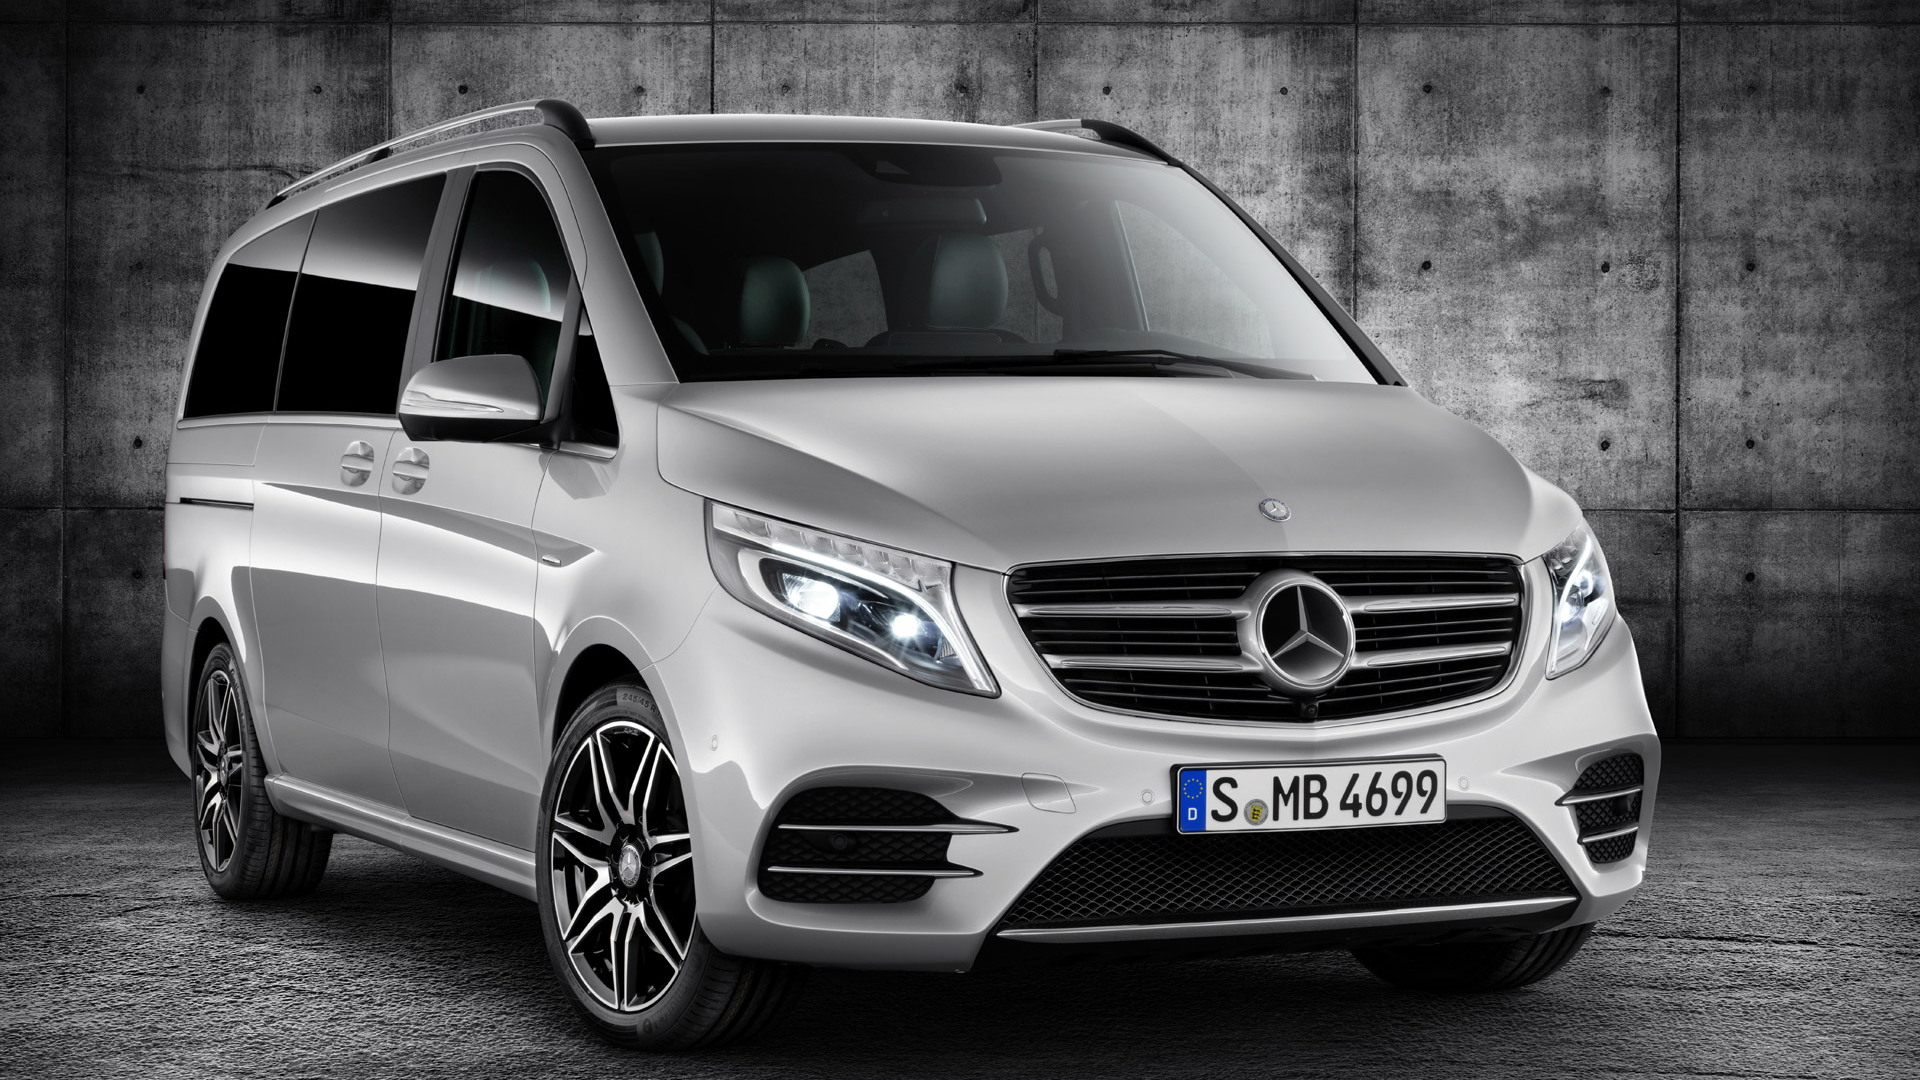 2015 Mercedes-Benz V-Class equipped with AMG Line package